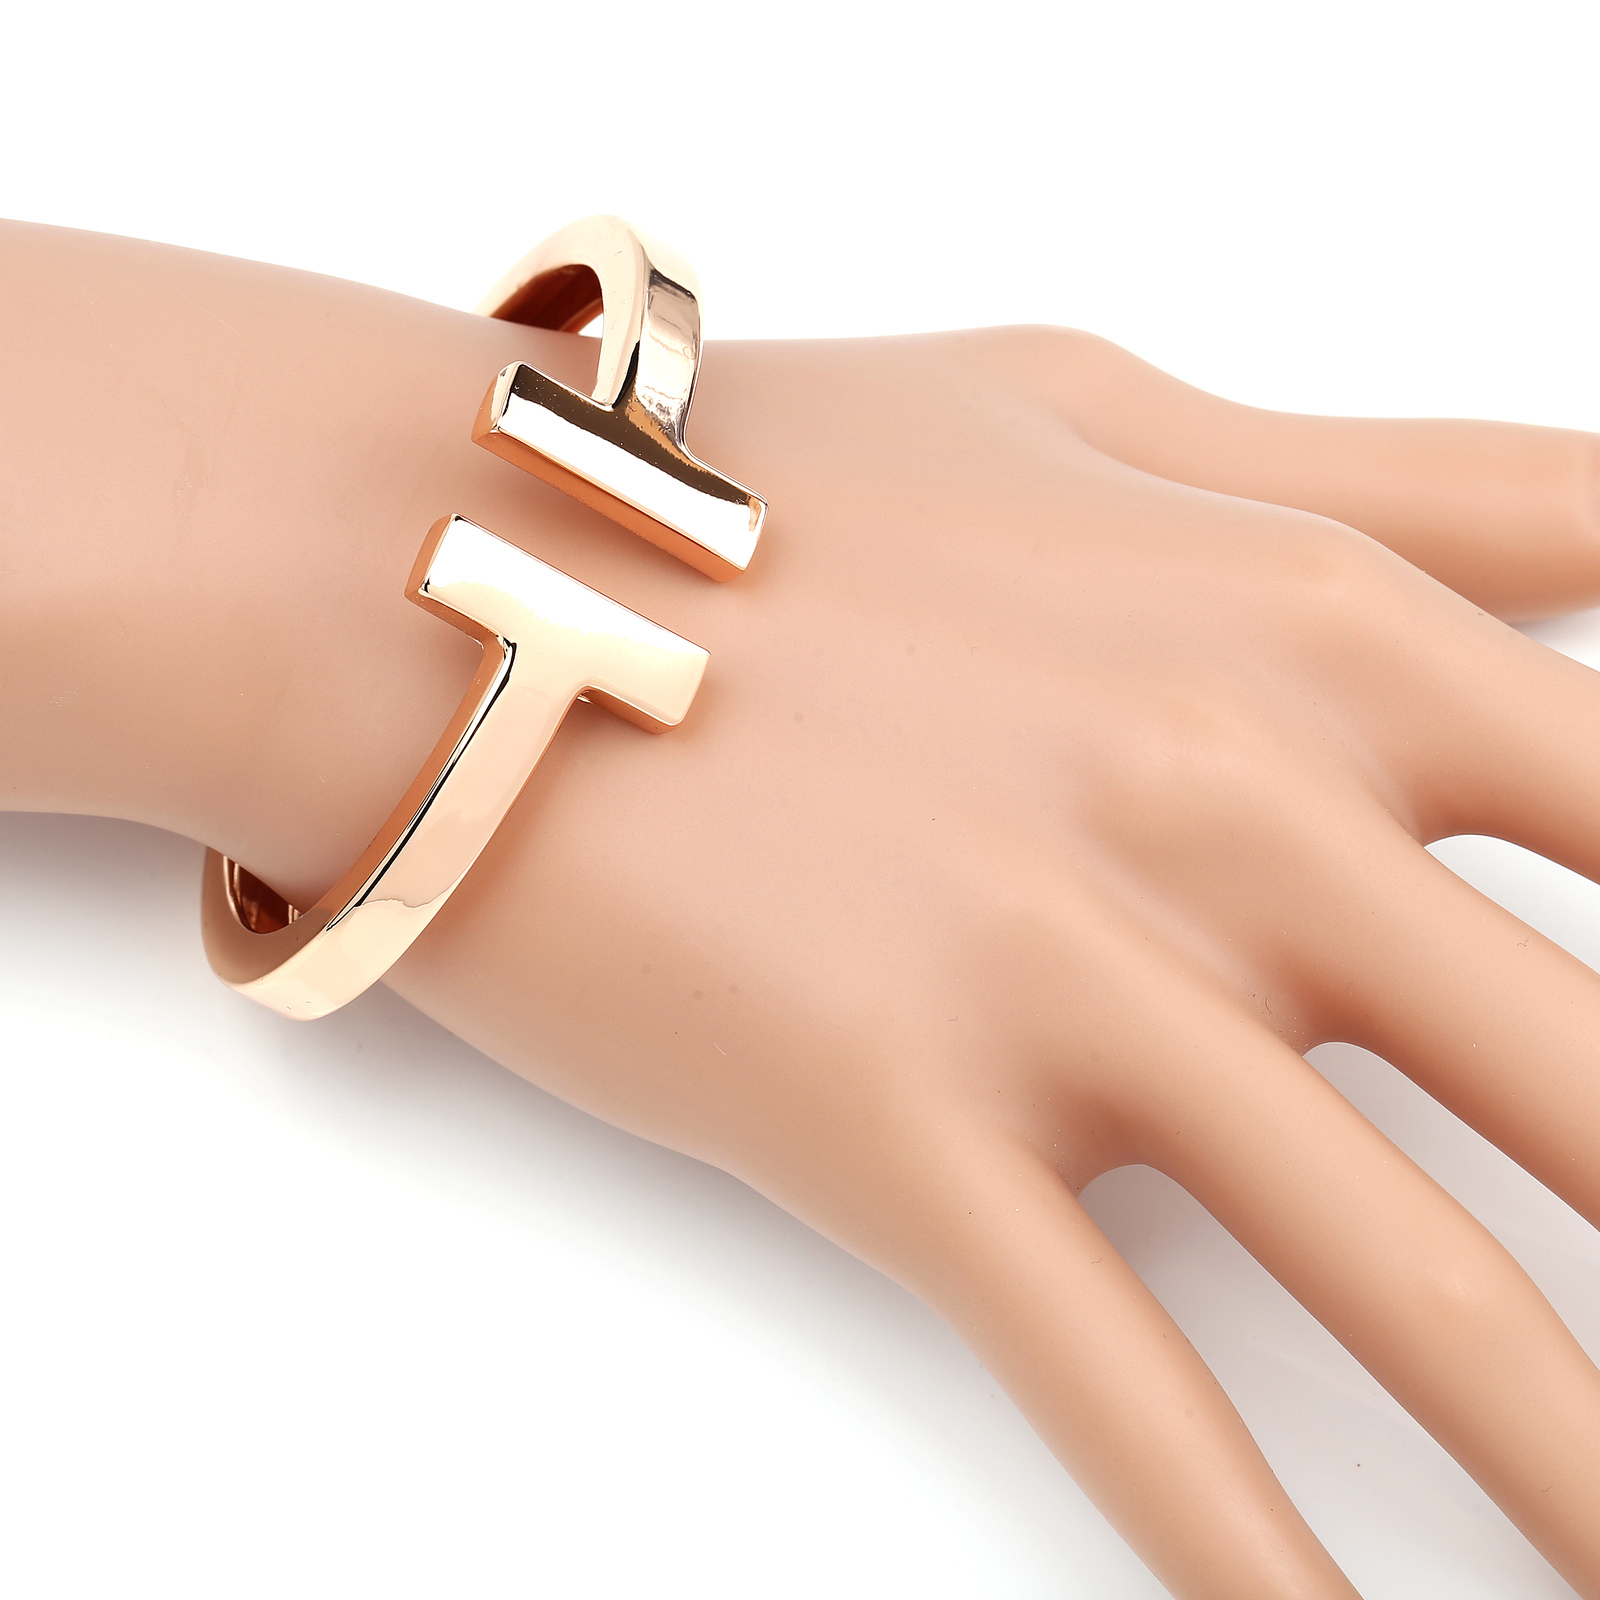 UE- Contemporary, Designer Rose Gold Tone Hinged T-Bar Cuff Bangle Bracelet